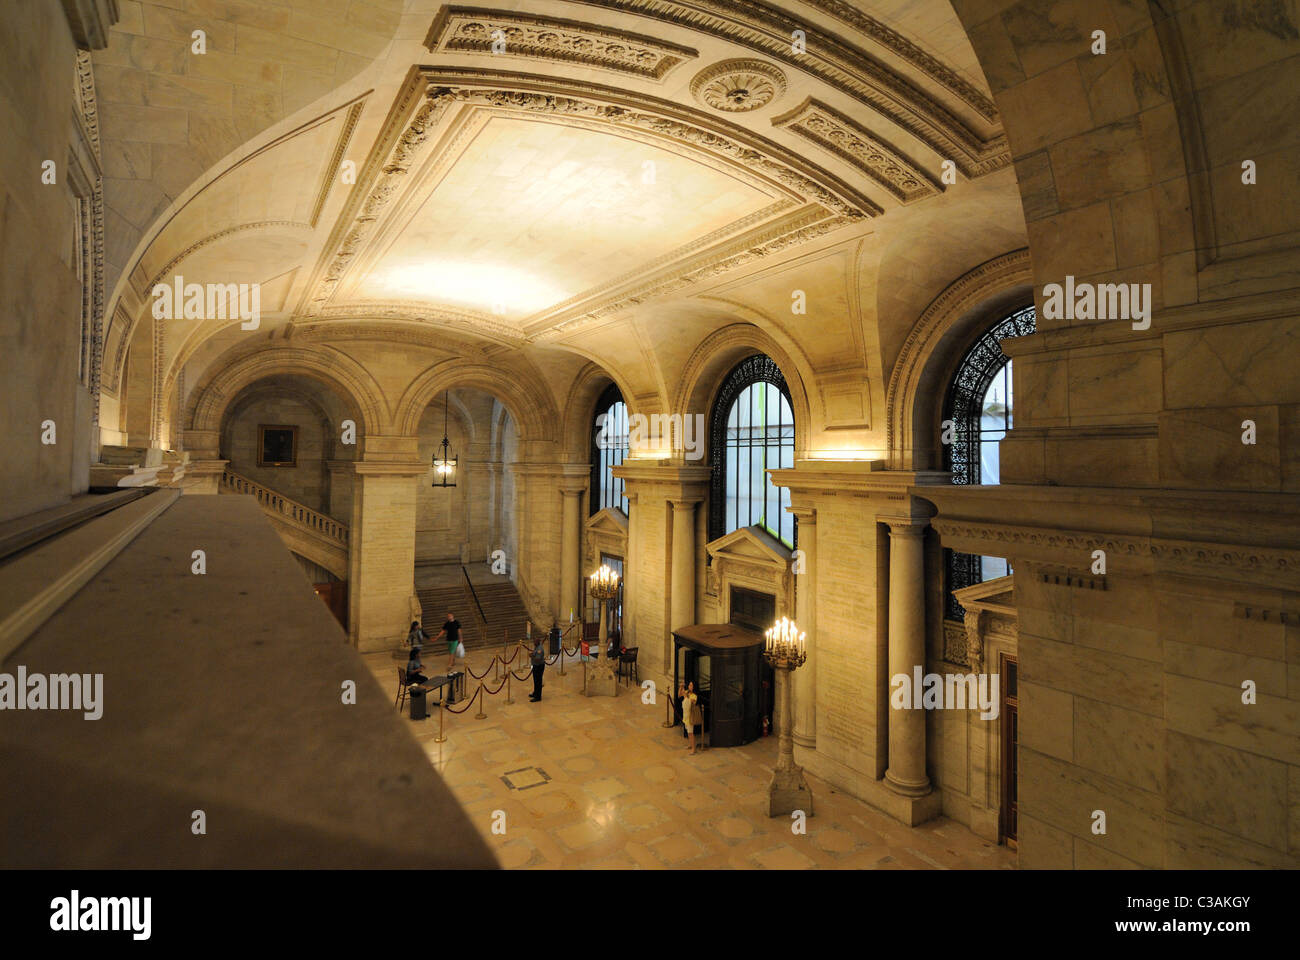 Inside the entrance hall of New York Public Library Main Branch Building - Stock Image